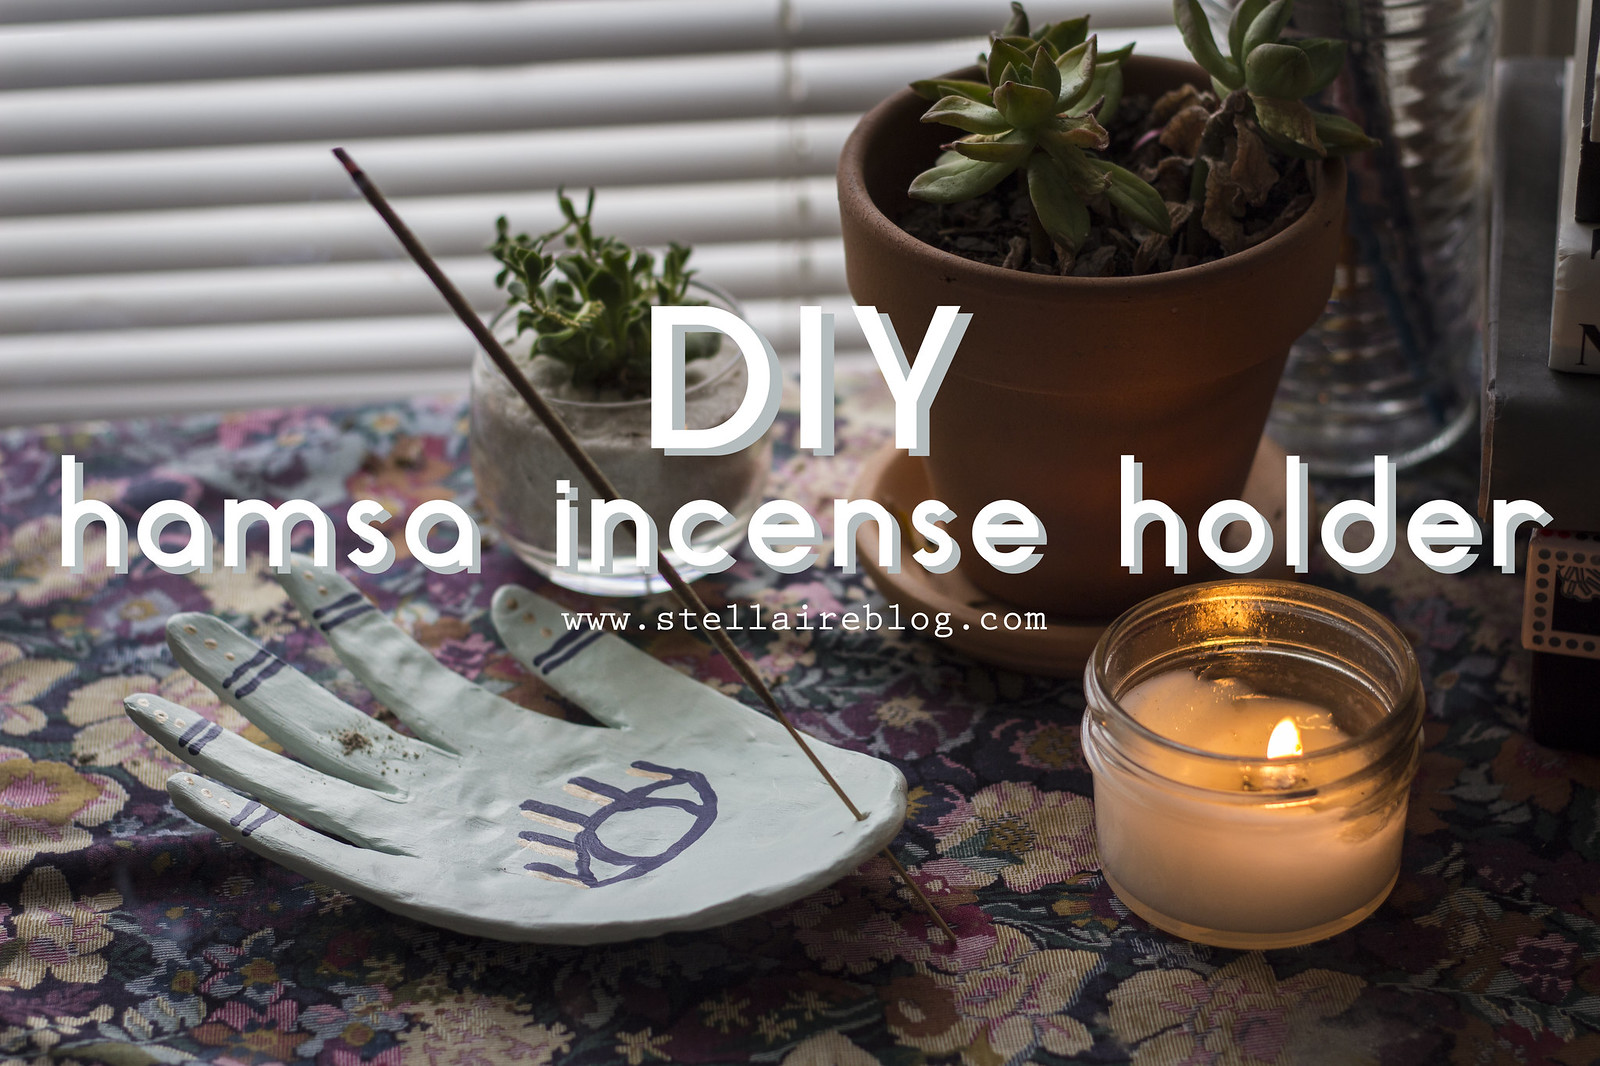 diy hamsa incense holder